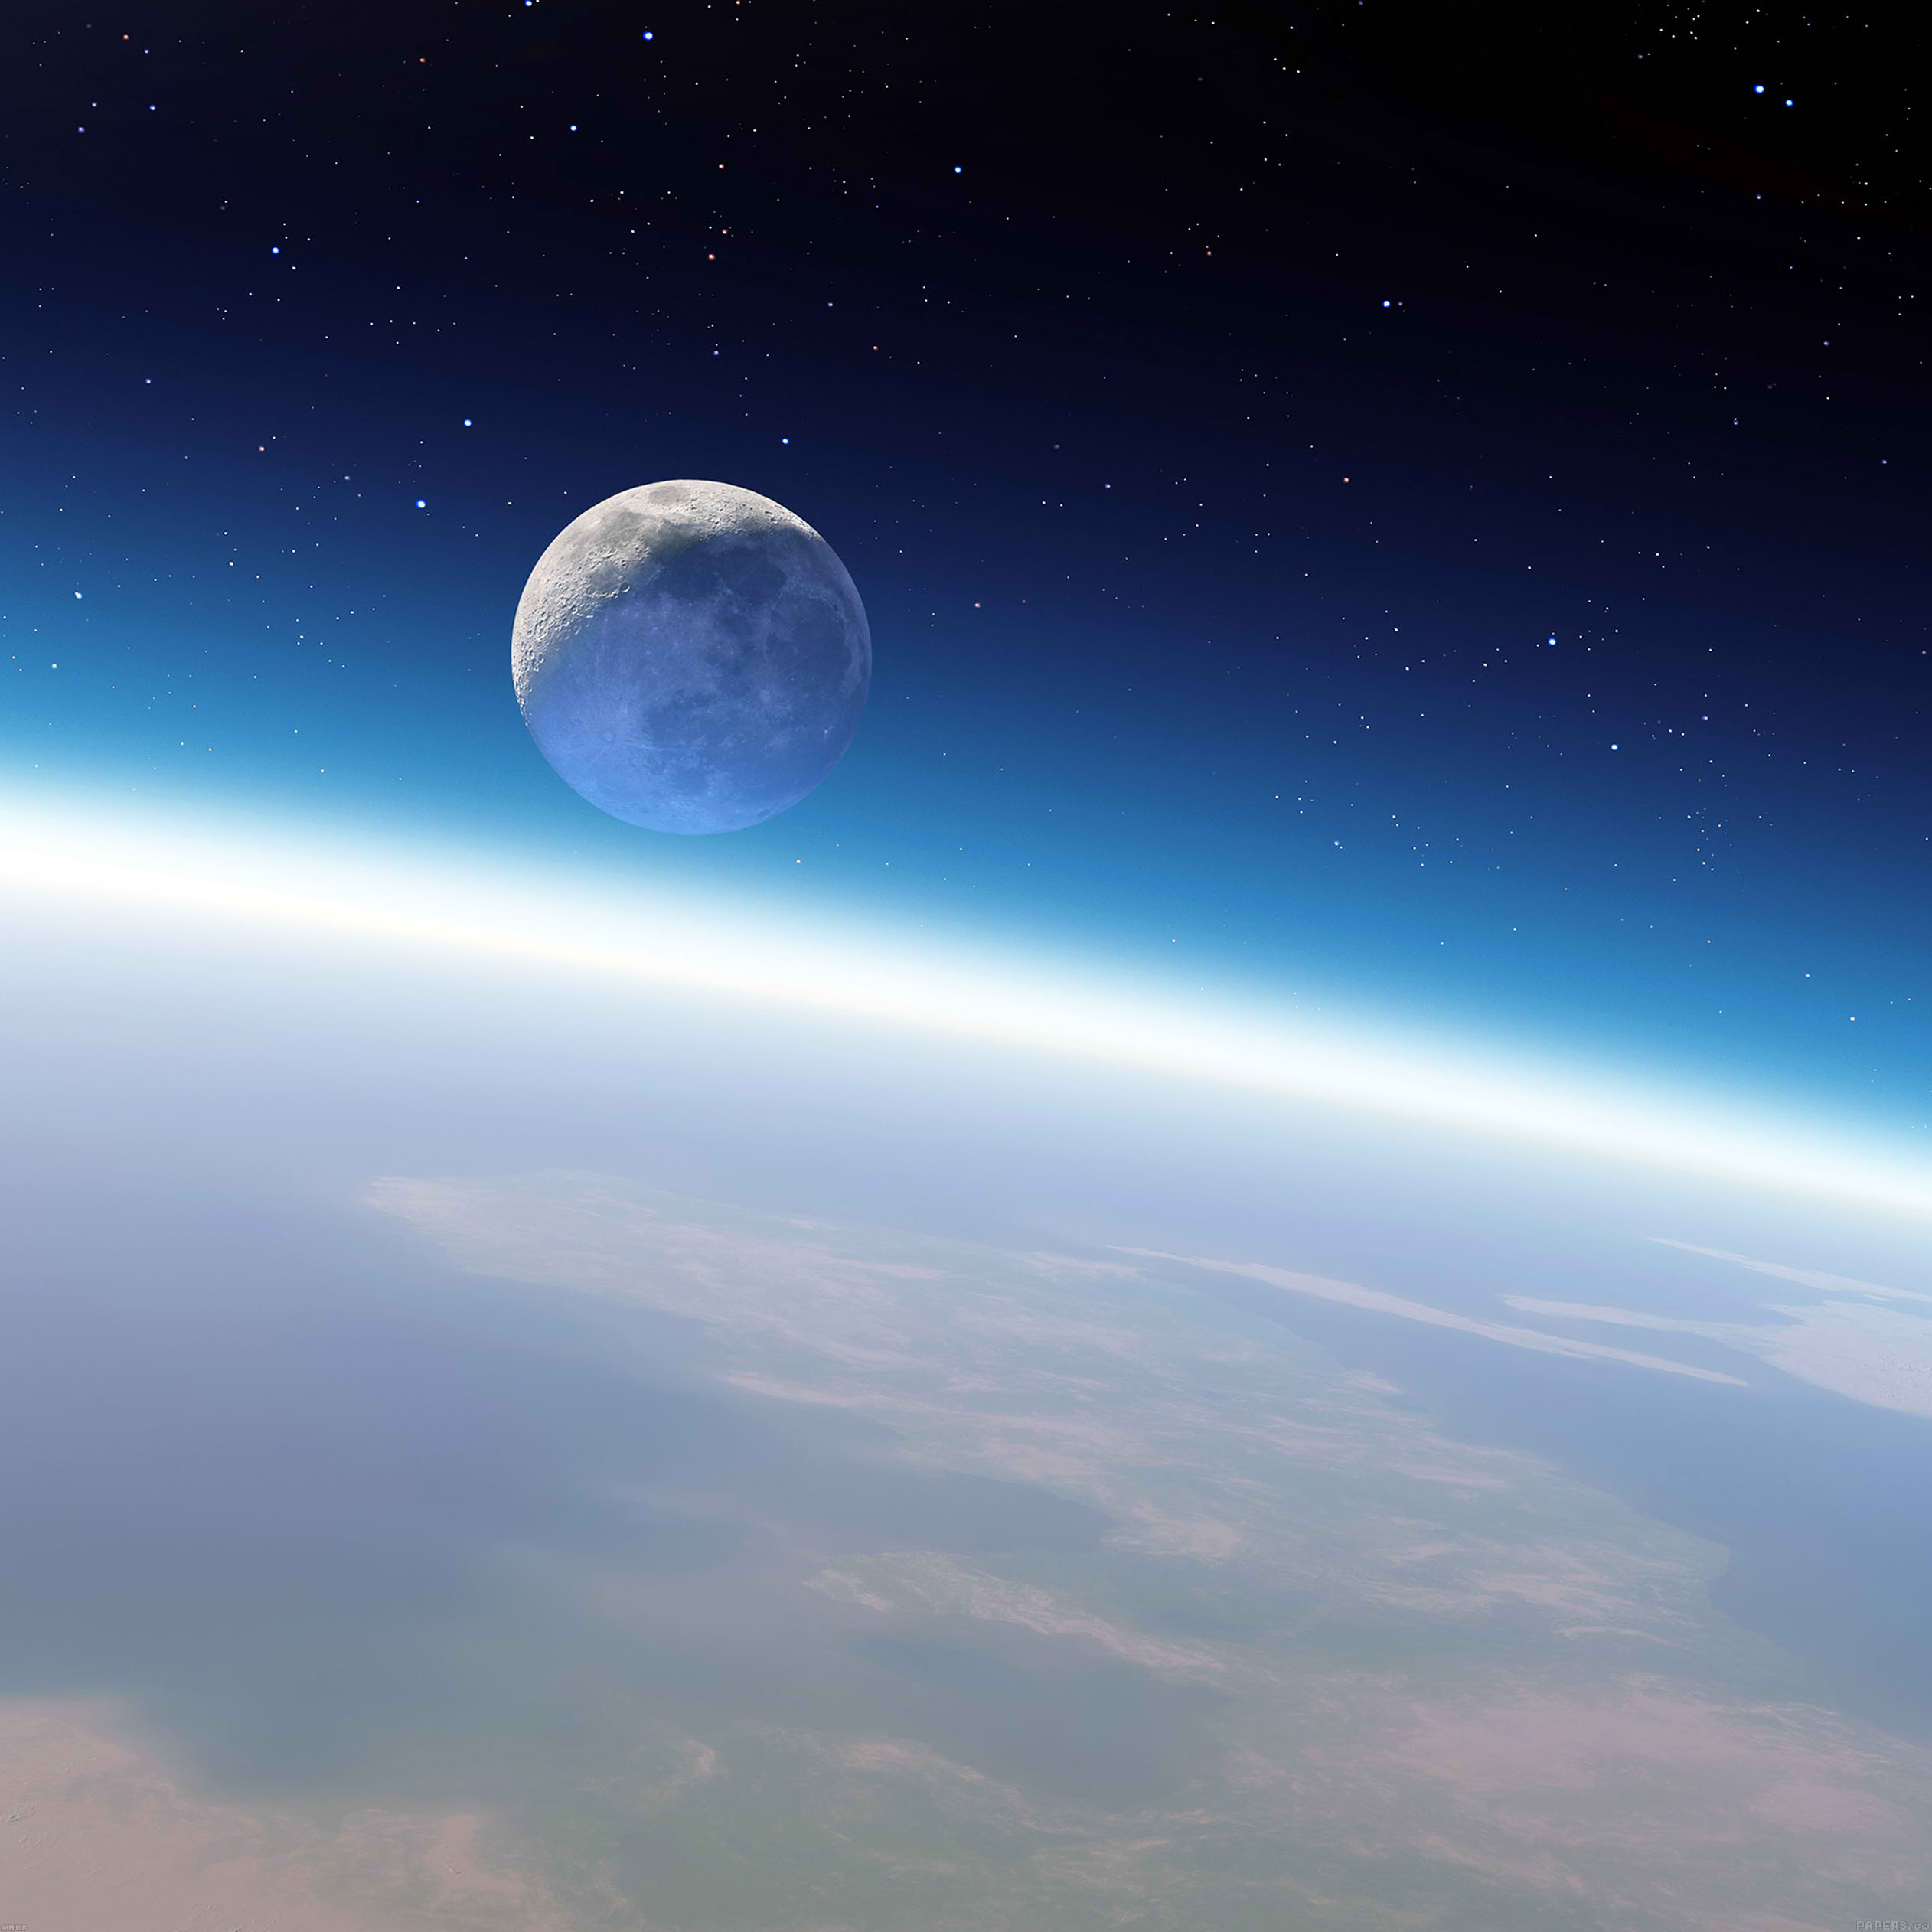 wallpaper earth and moon space 9 wallpaper